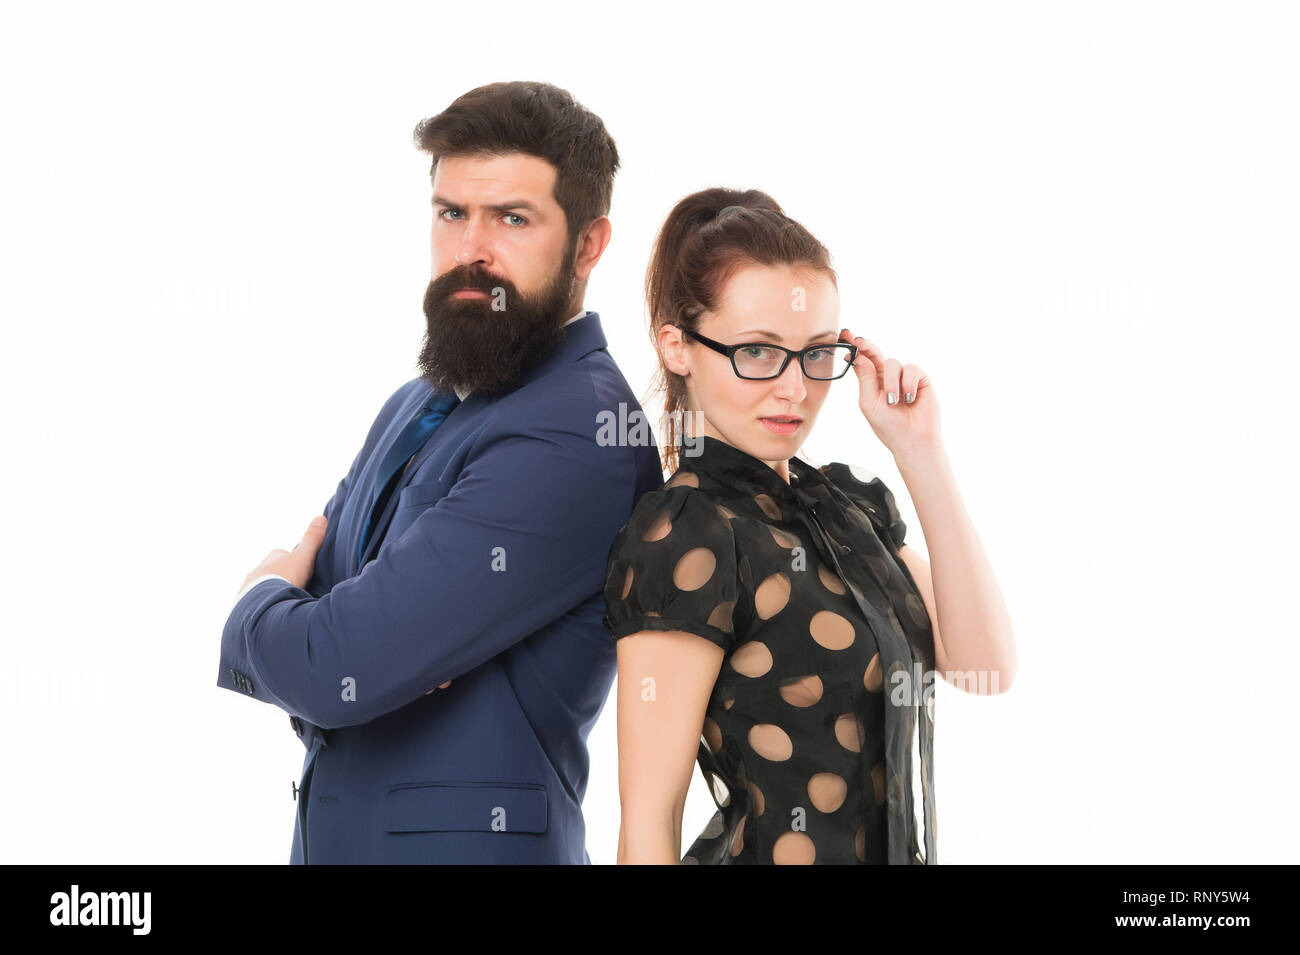 Business partners leadership and cooperation balance. Office job and business. Business concept. Nothing personal just business. Couple colleagues man with beard and pretty woman on white background. - Stock Image